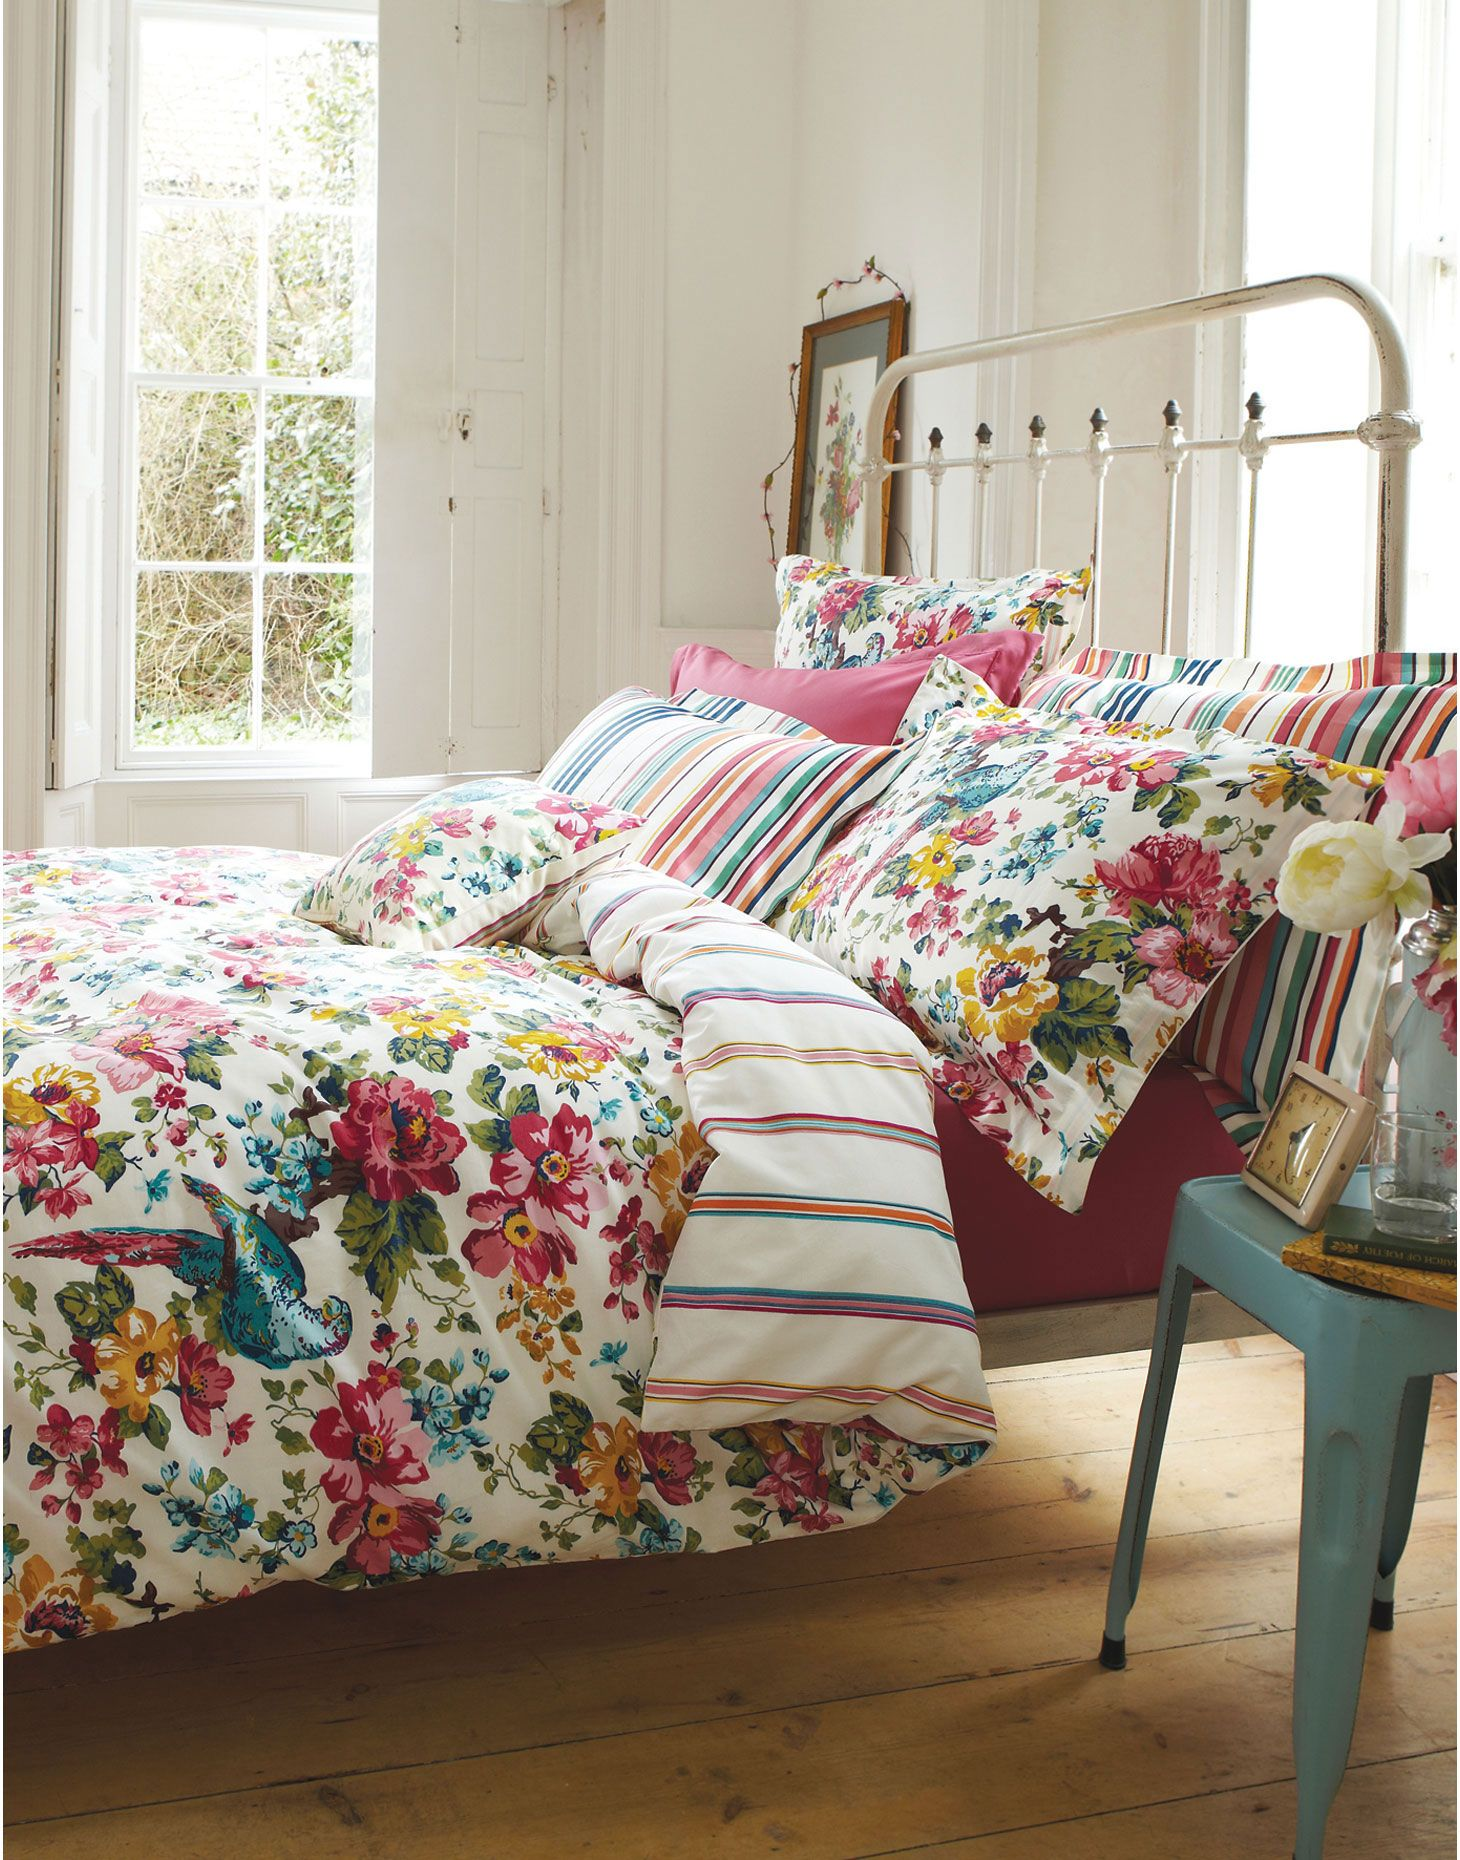 duvetsunbird reversible sunbird floral duvet cover  joules is not  - duvetsunbird reversible sunbird floral duvet cover  joules is not just forequestrians